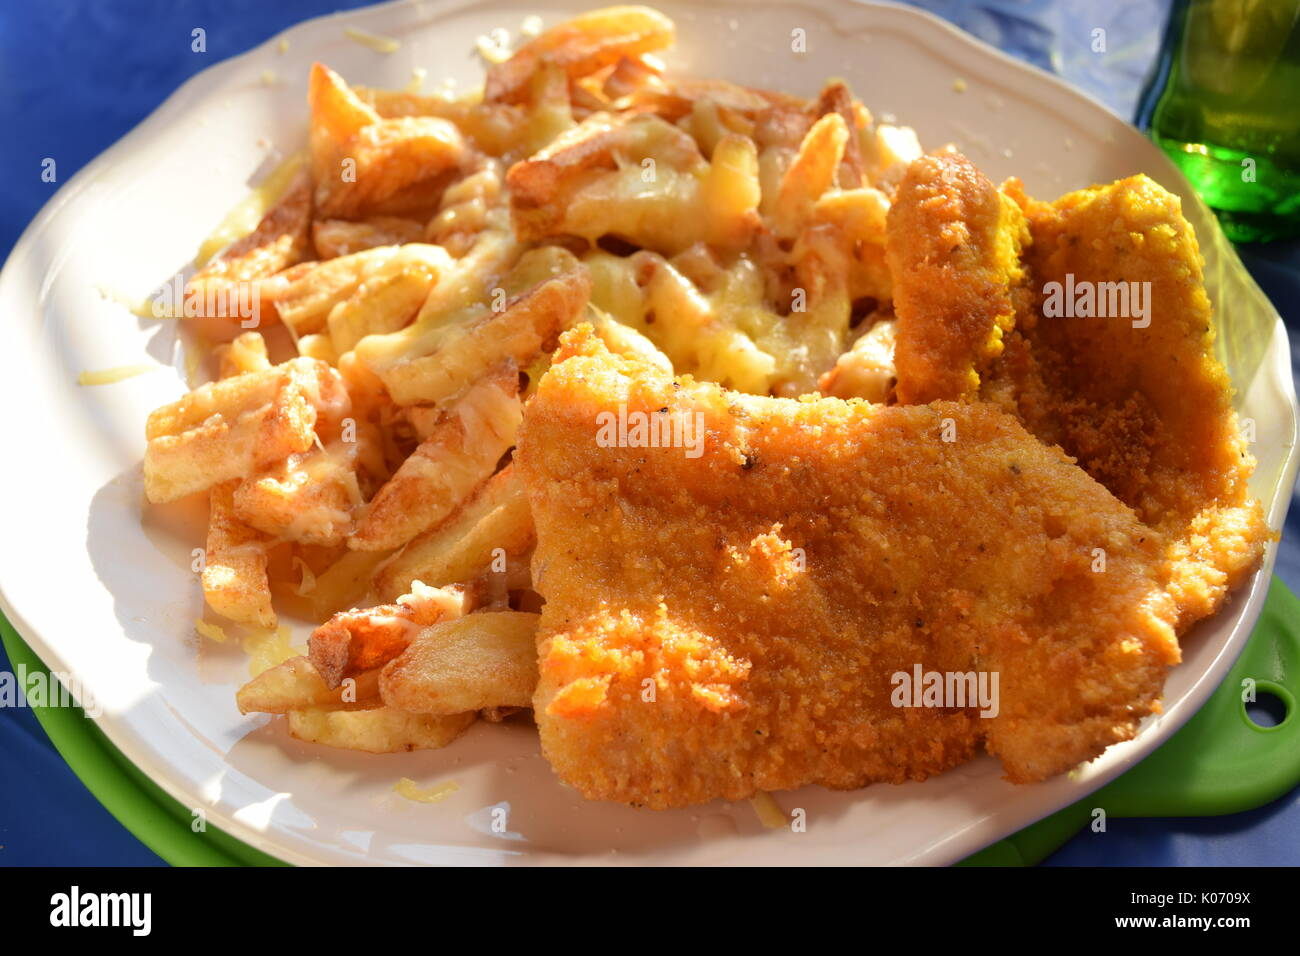 Cheesy chips and fried battered fish - Stock Image